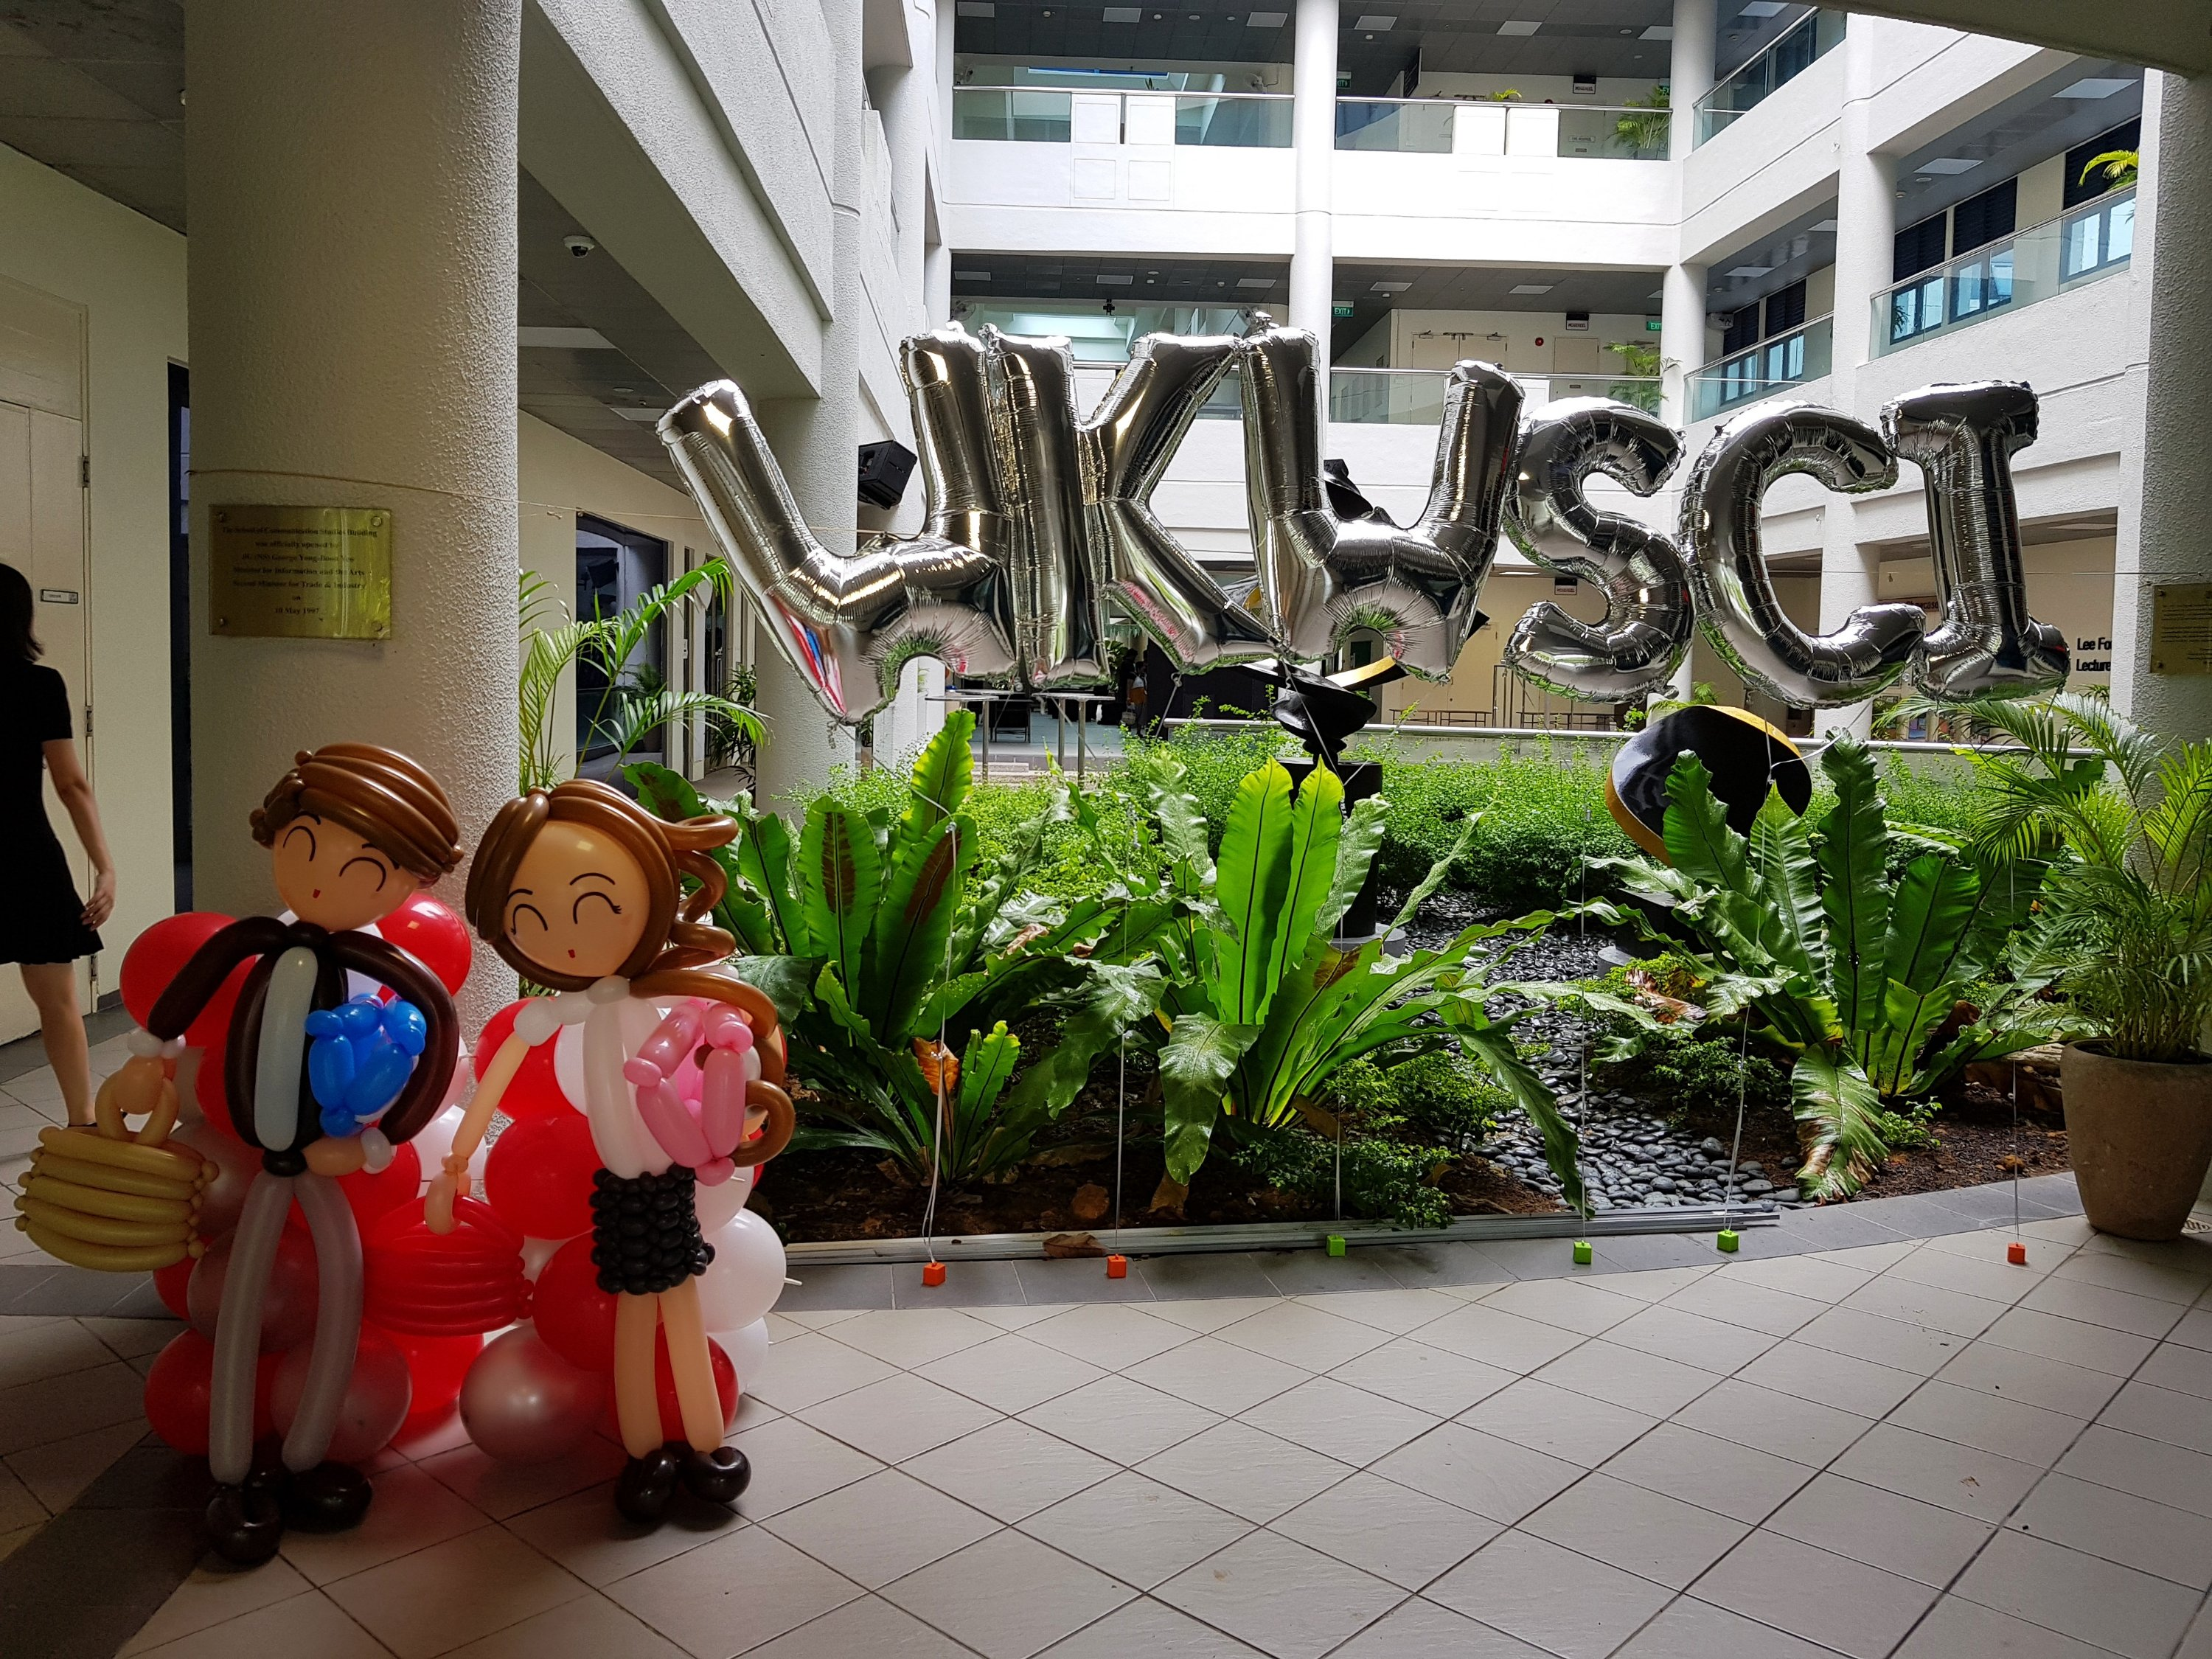 , Balloon Decorations for NTU, Wee Kim Wee School of Communication and Information!, Singapore Balloon Decoration Services - Balloon Workshop and Balloon Sculpting